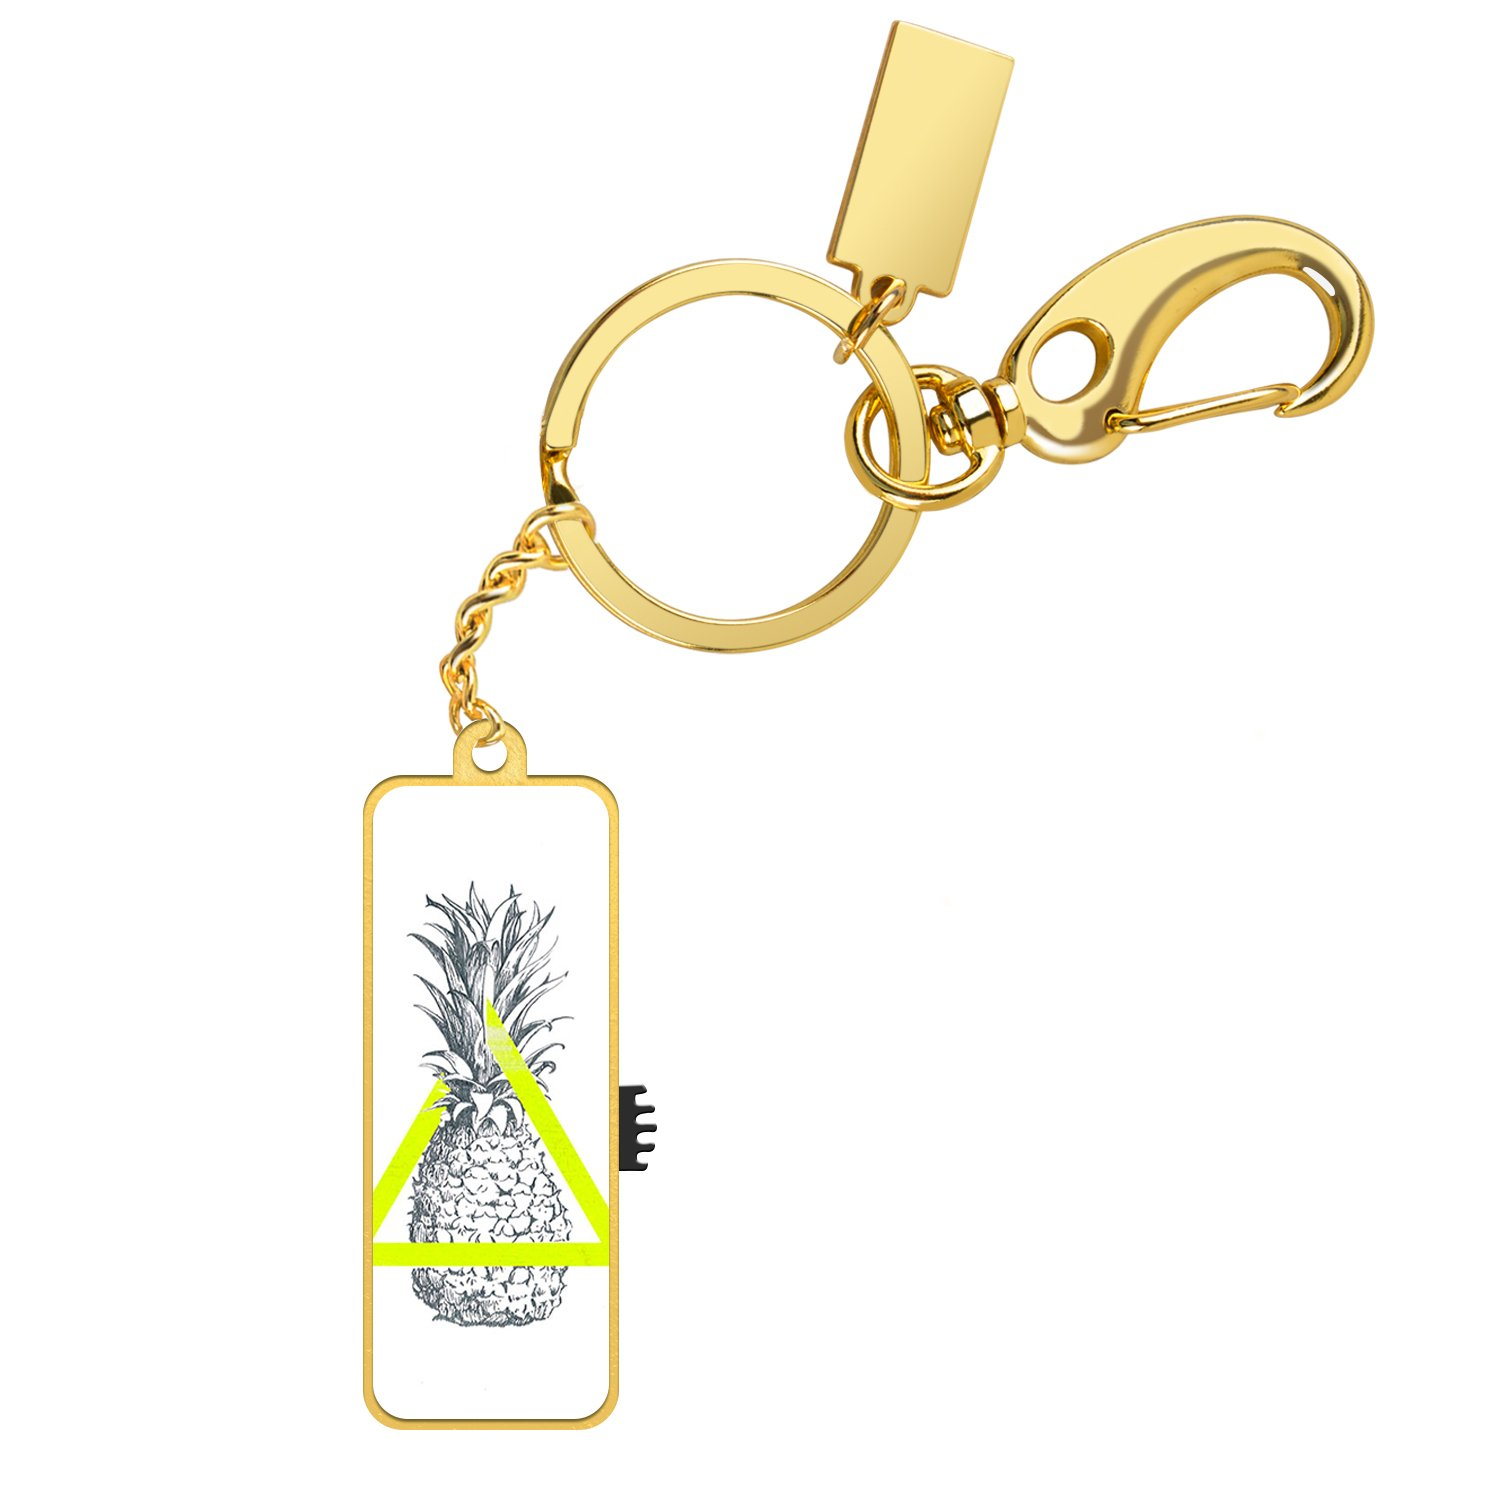 U Disk Flash Drive, 16GB Memory Stick Customized Thumb Drive with Key Chain Design,High Transfer Speed USB 2.0 Date Storage(Gold-Pineapple)